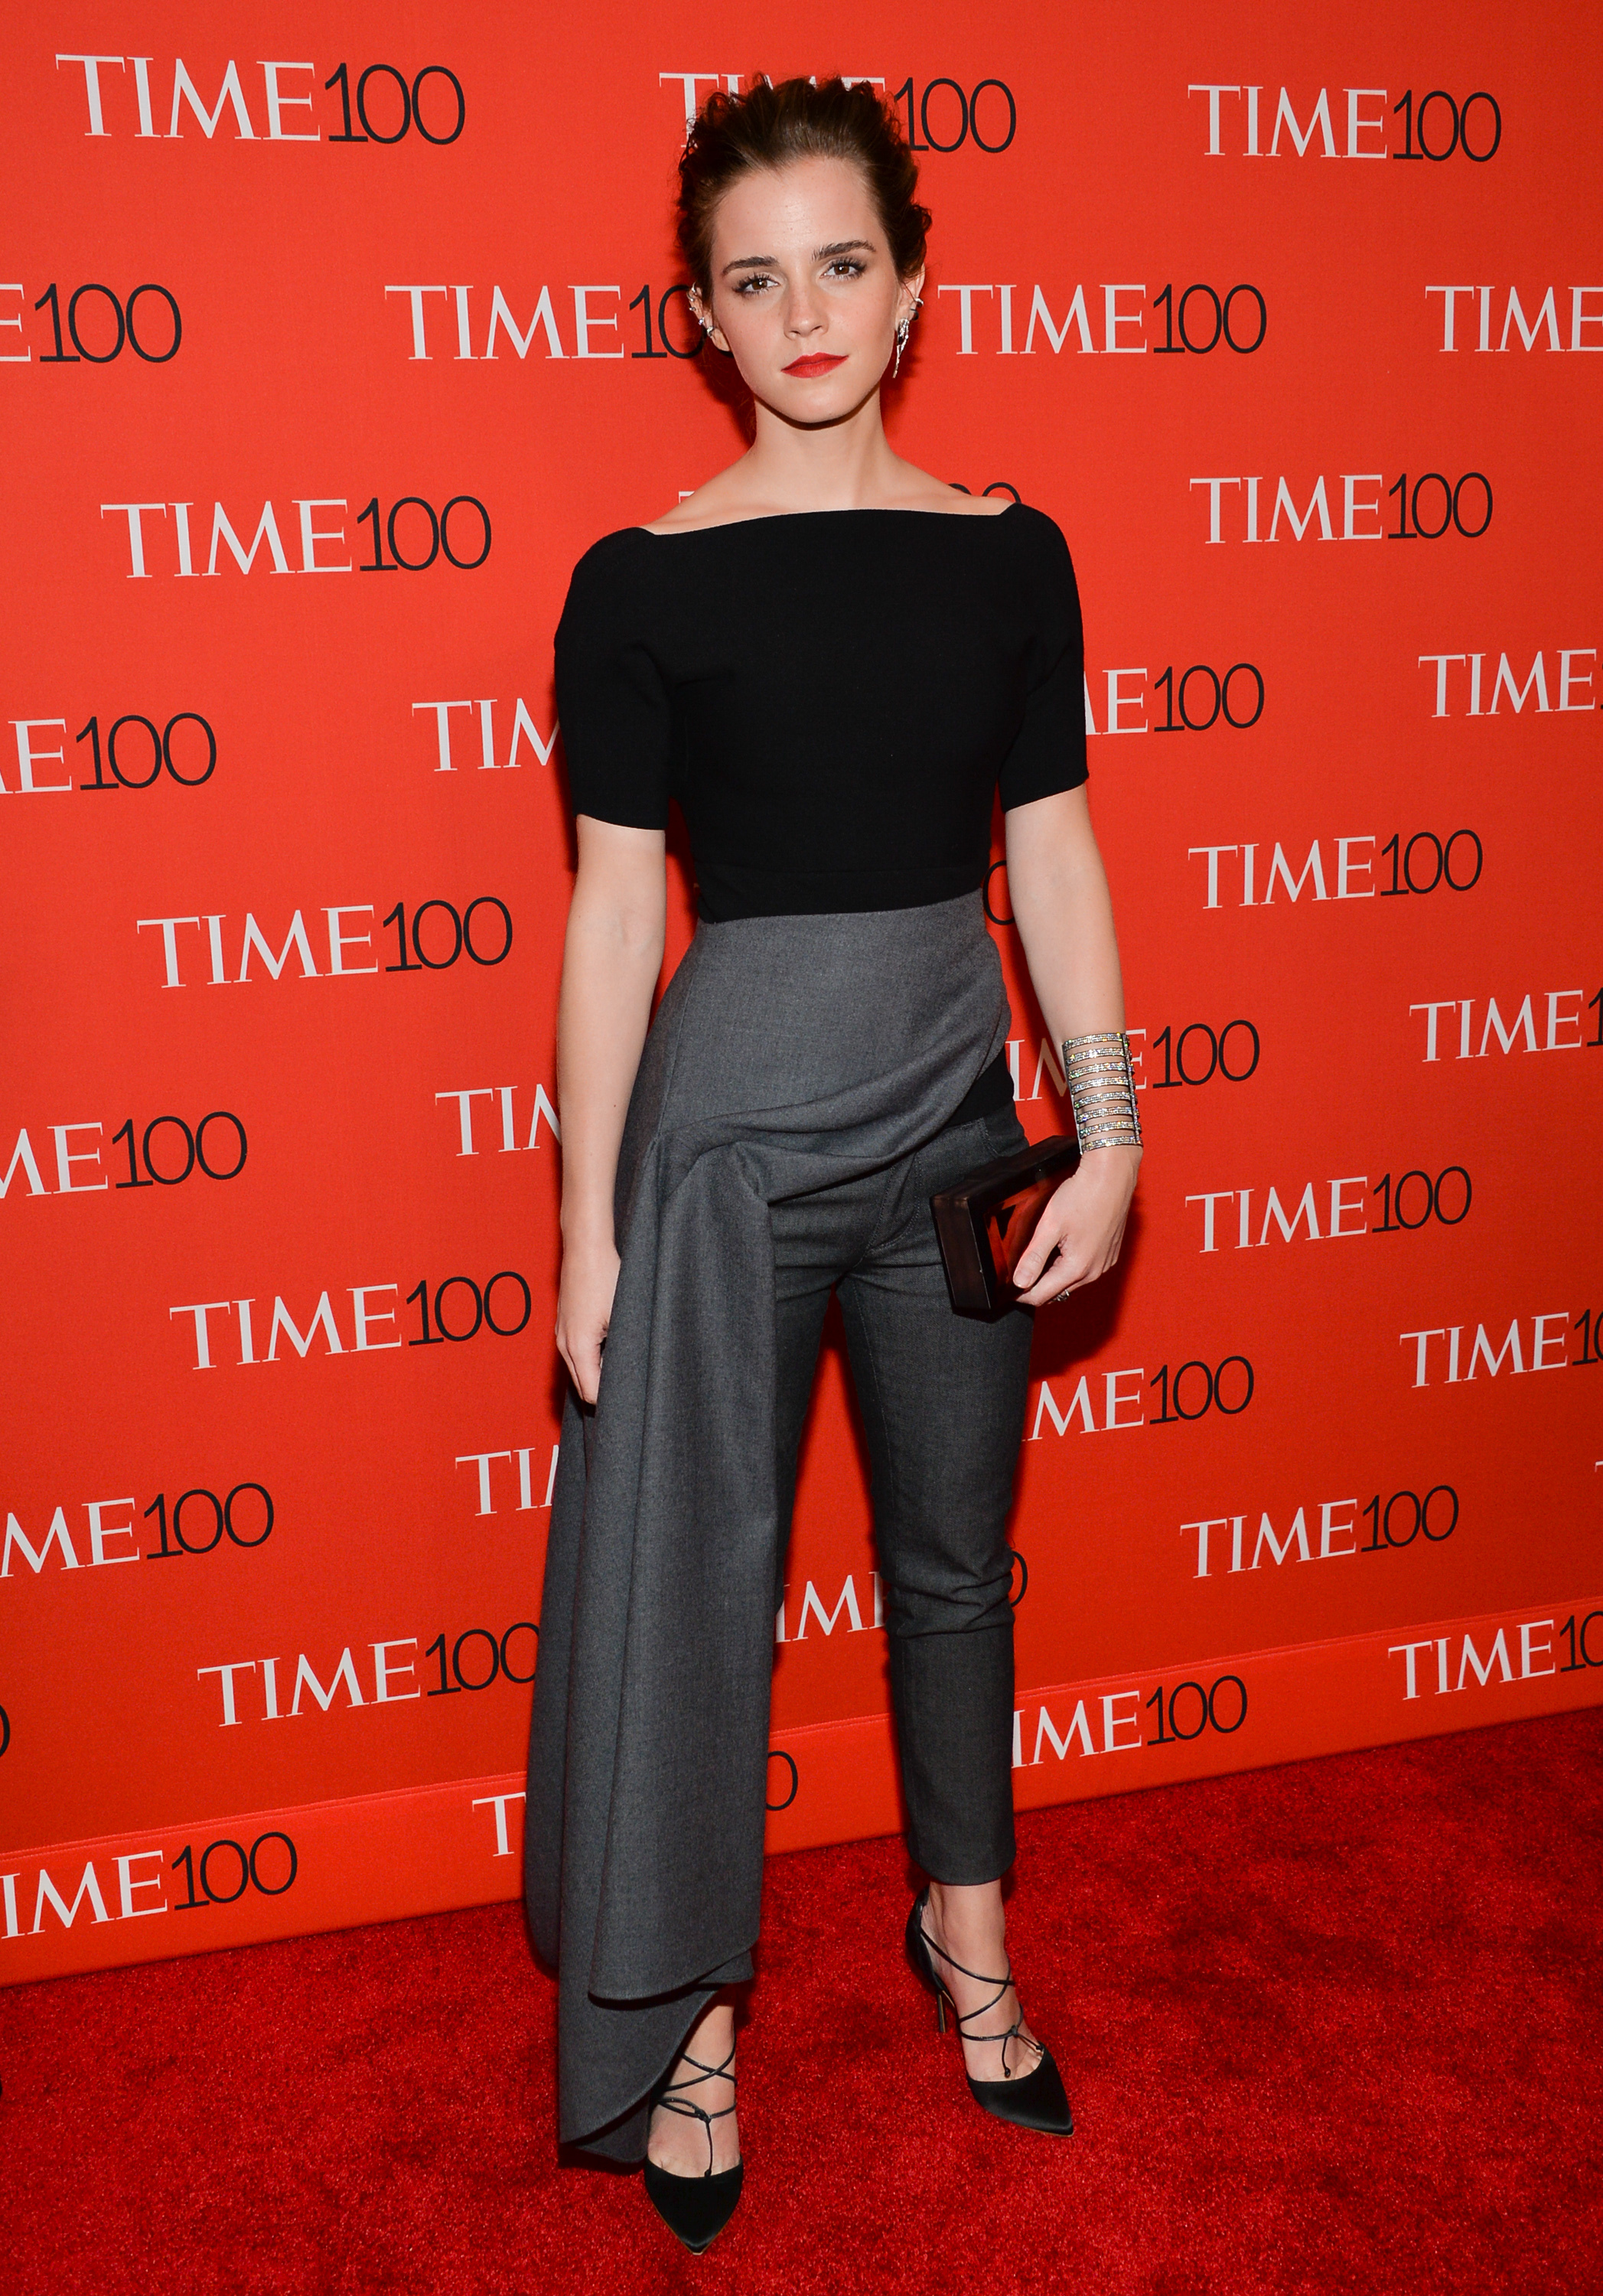 Emma Watson reveals she subscribes to a site that teaches sexual pleasure